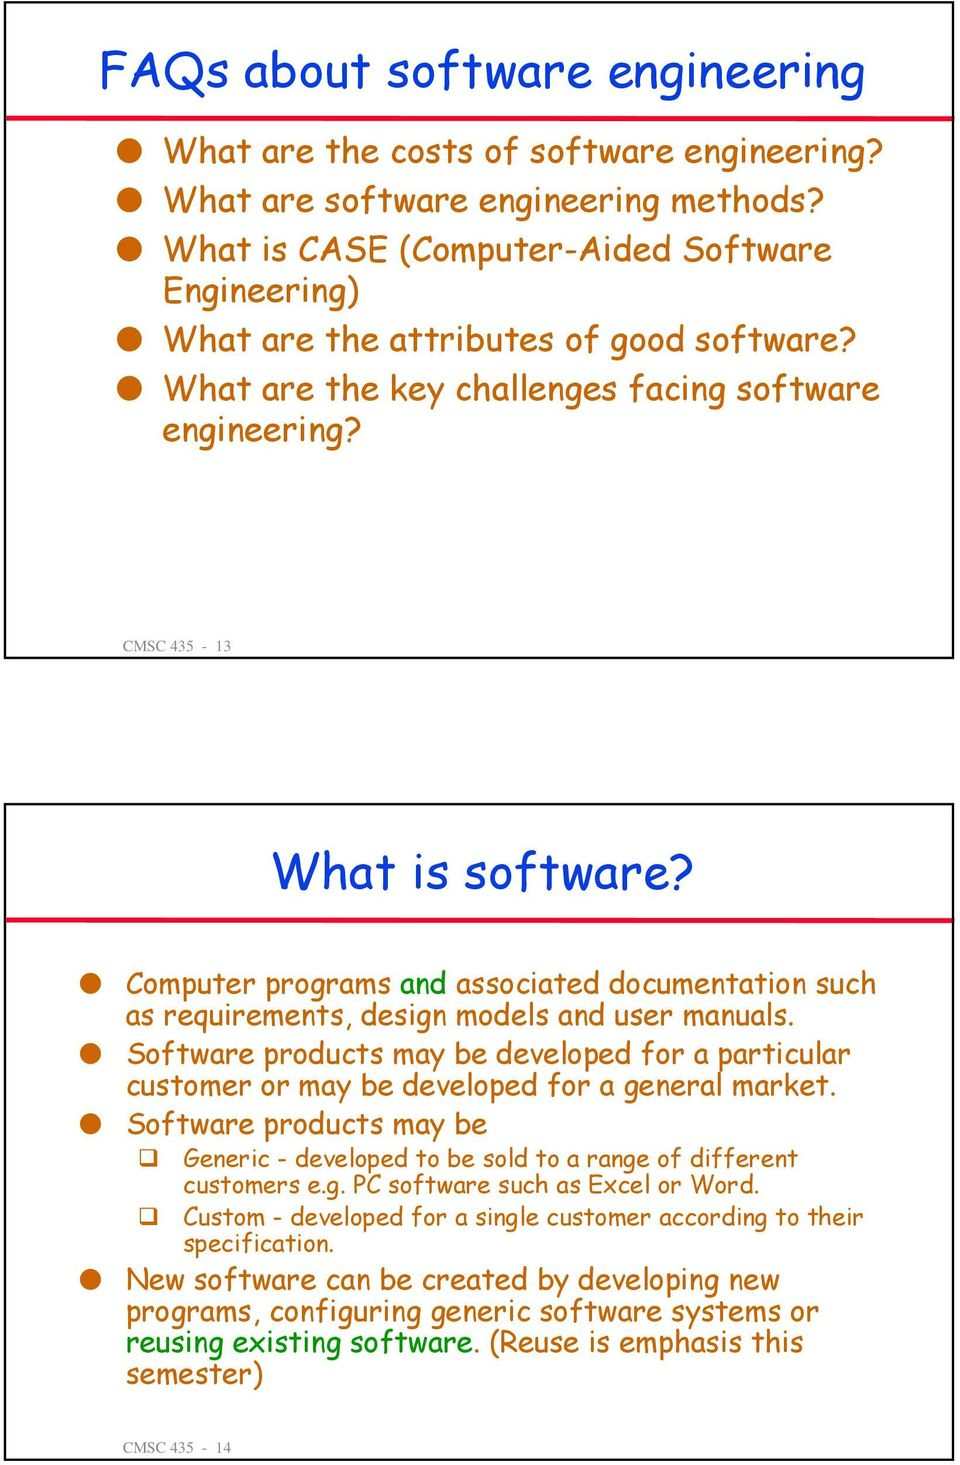 Computer programs and associated documentation such as requirements, design models and user manuals.